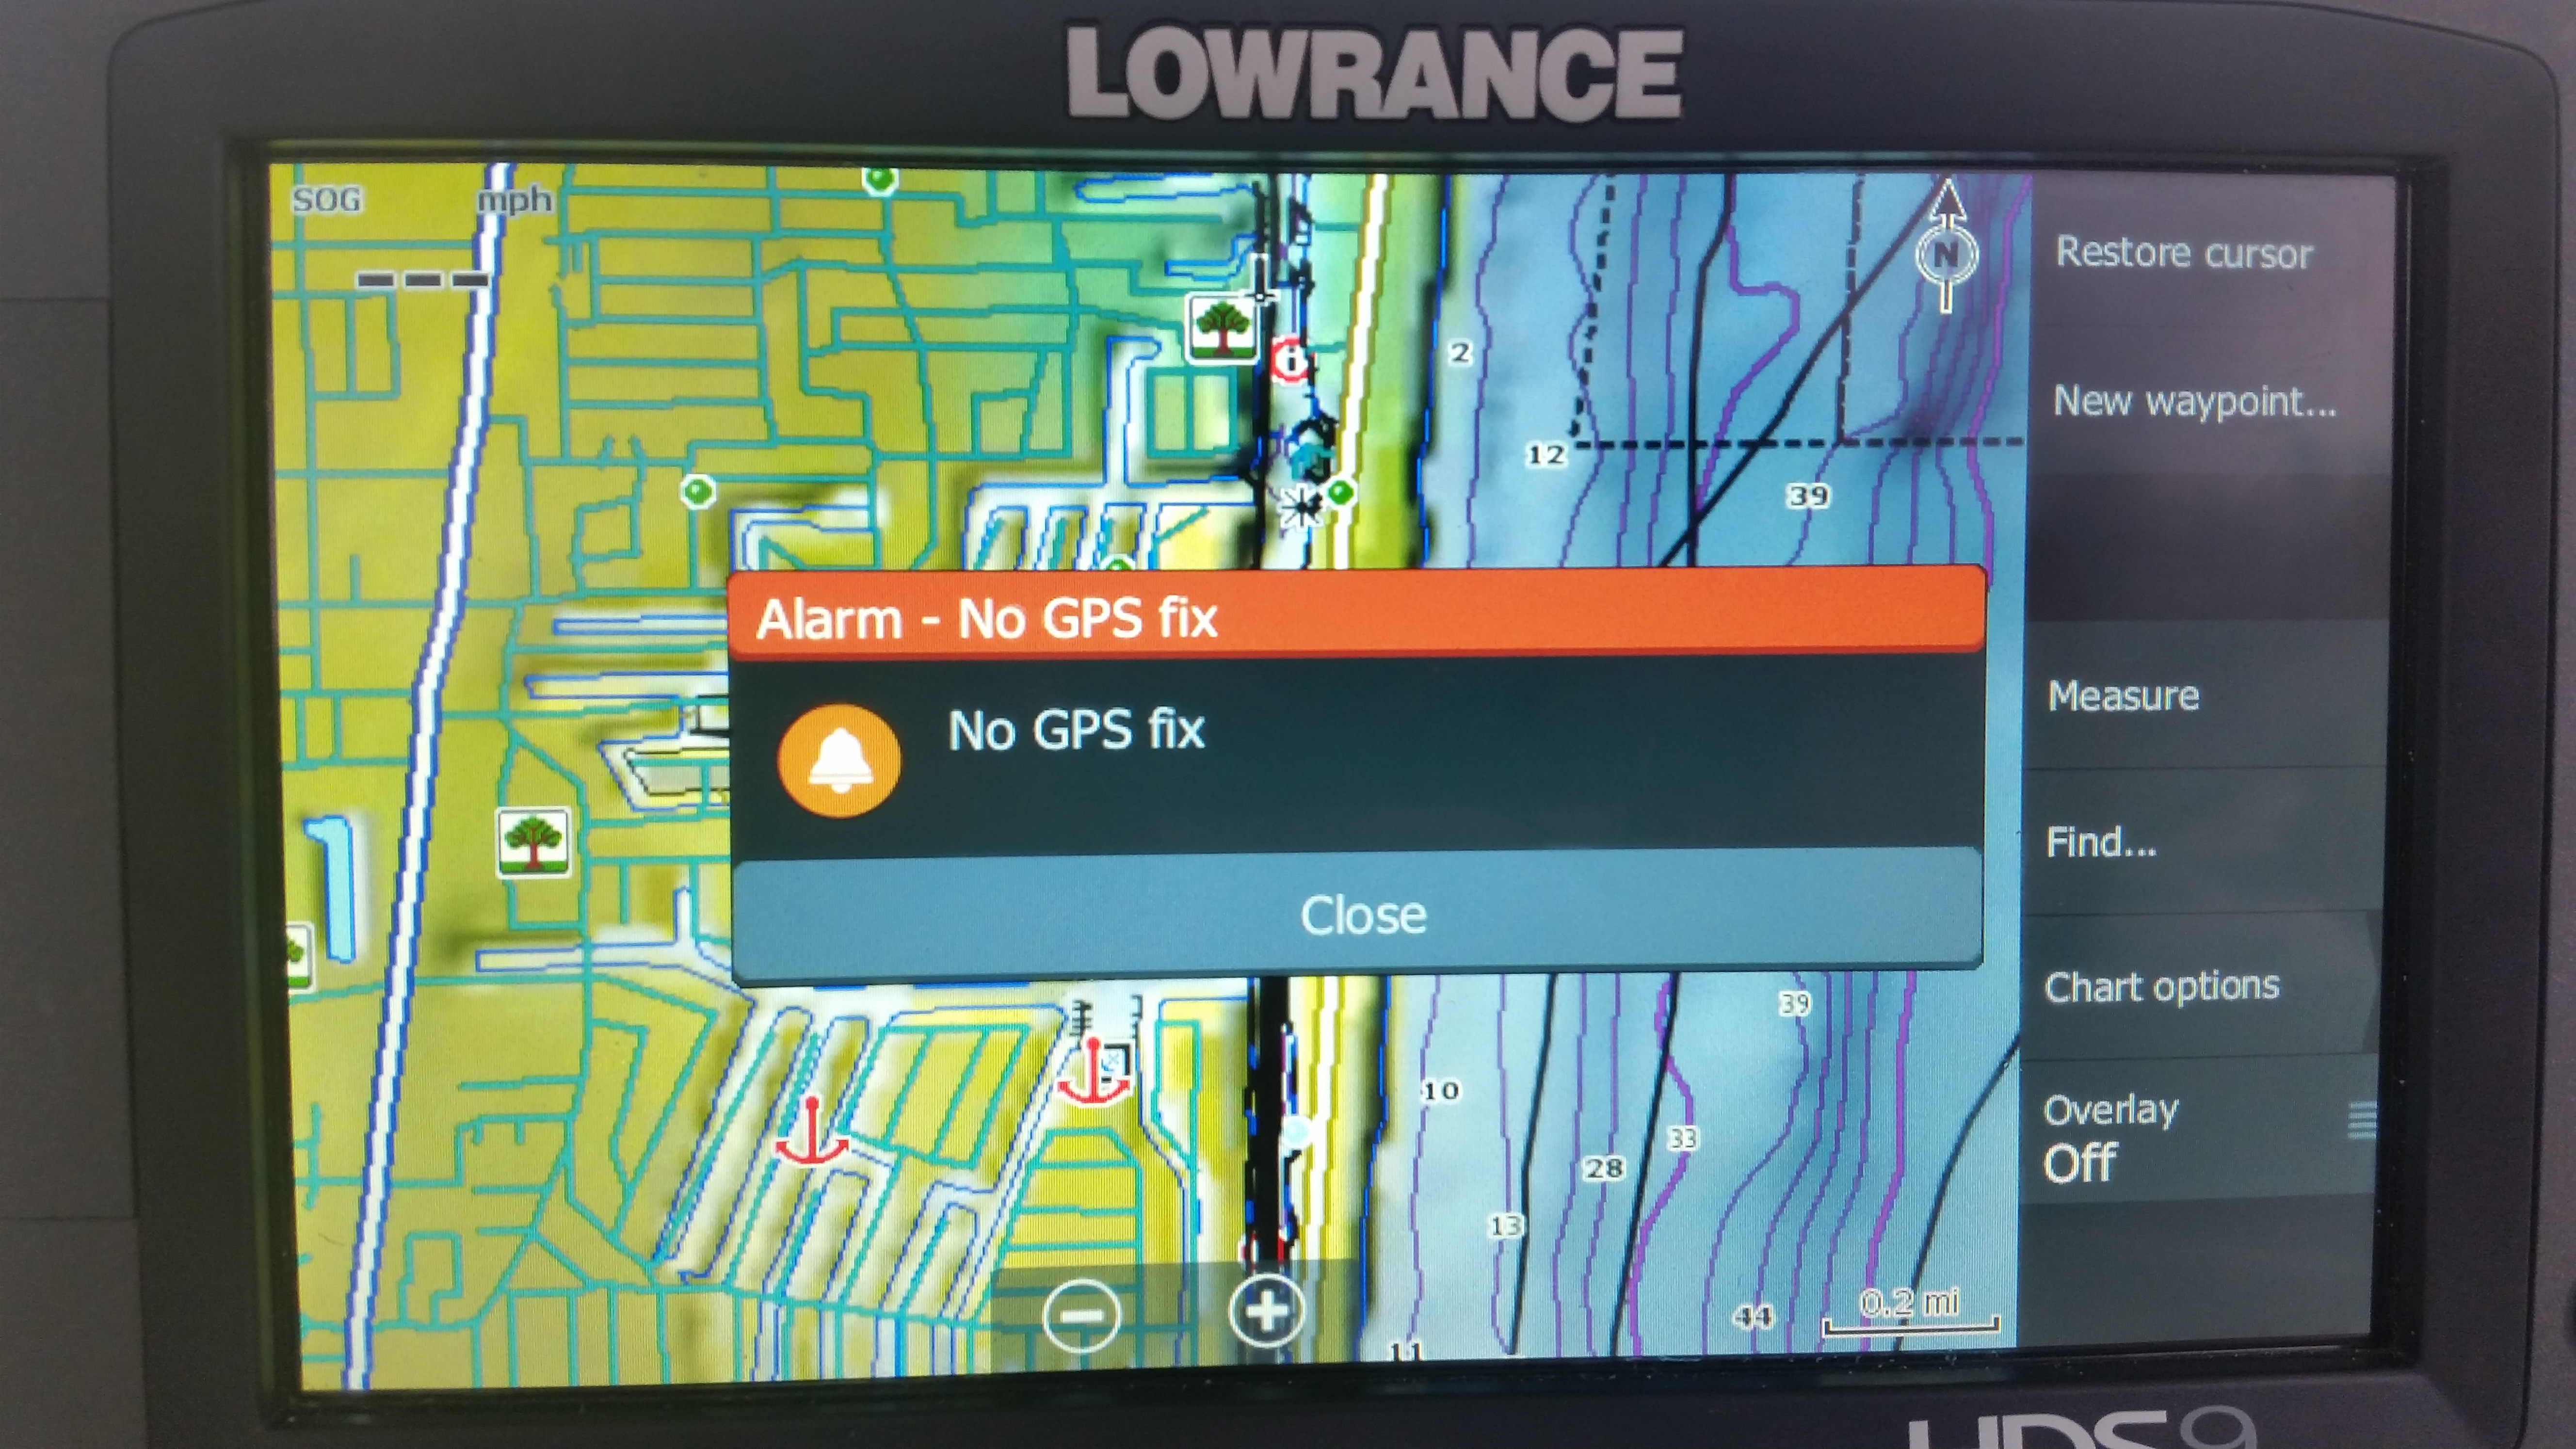 I have an Lowrance HDS 9 Gen 2 and am having problems  I never had a